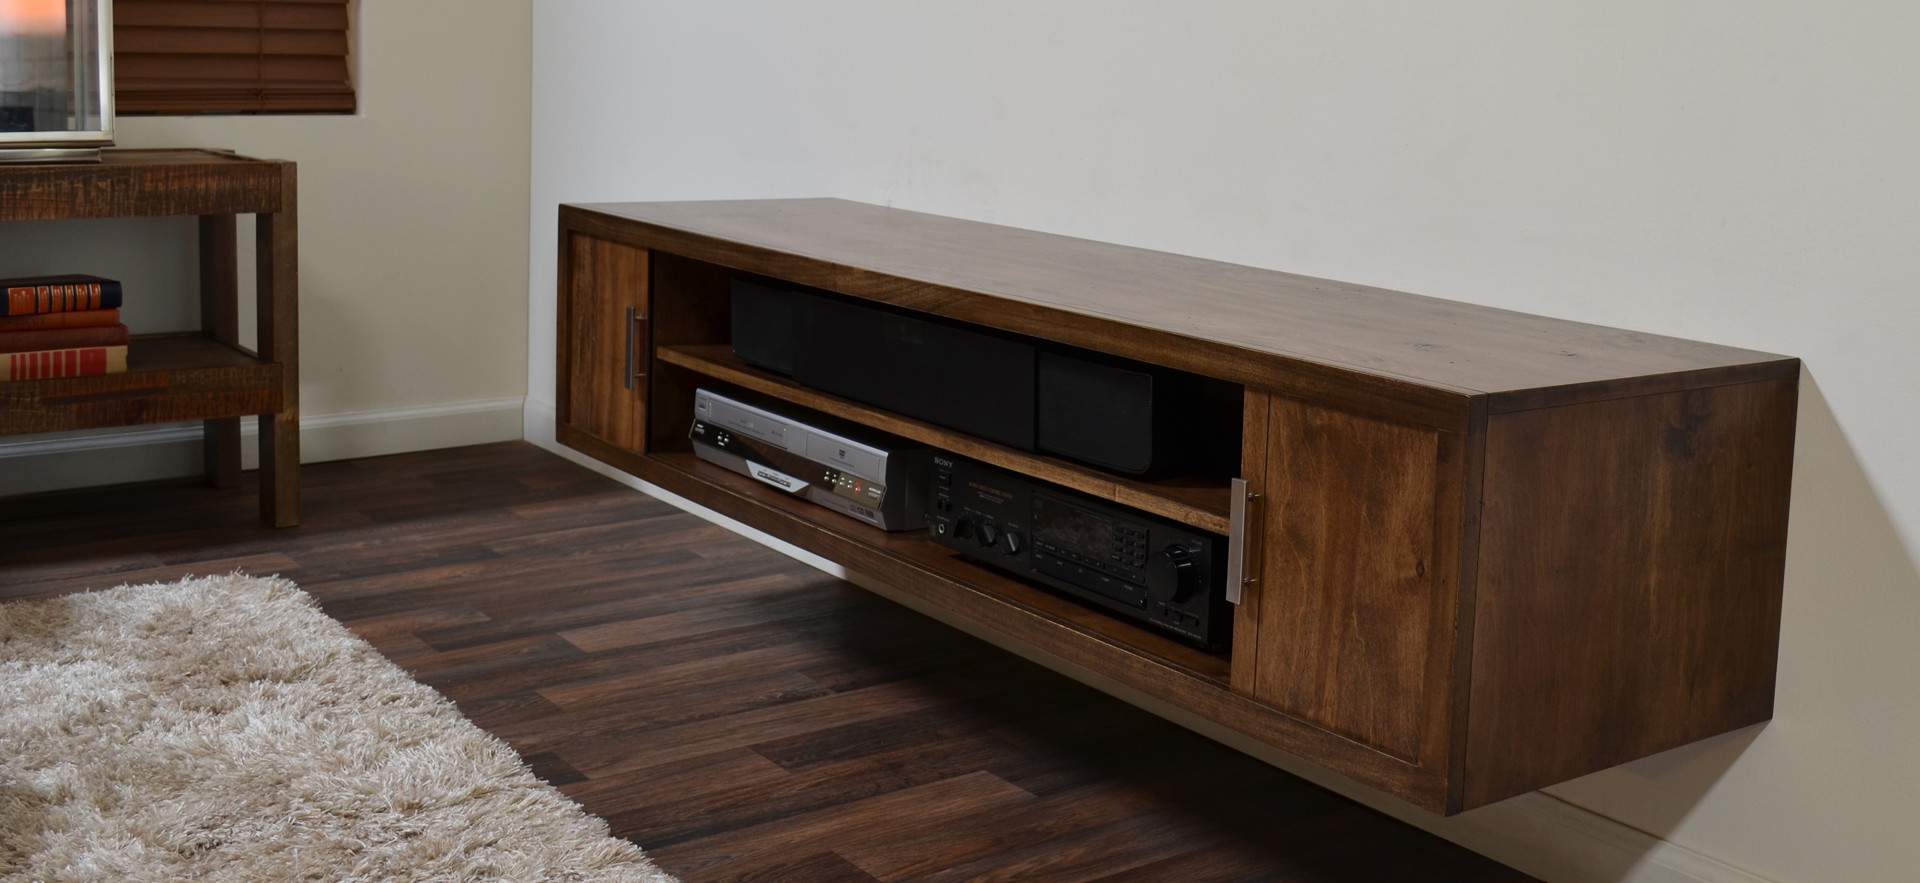 Hanging Media Console Floating Media Console A Way To Display Your Tv With